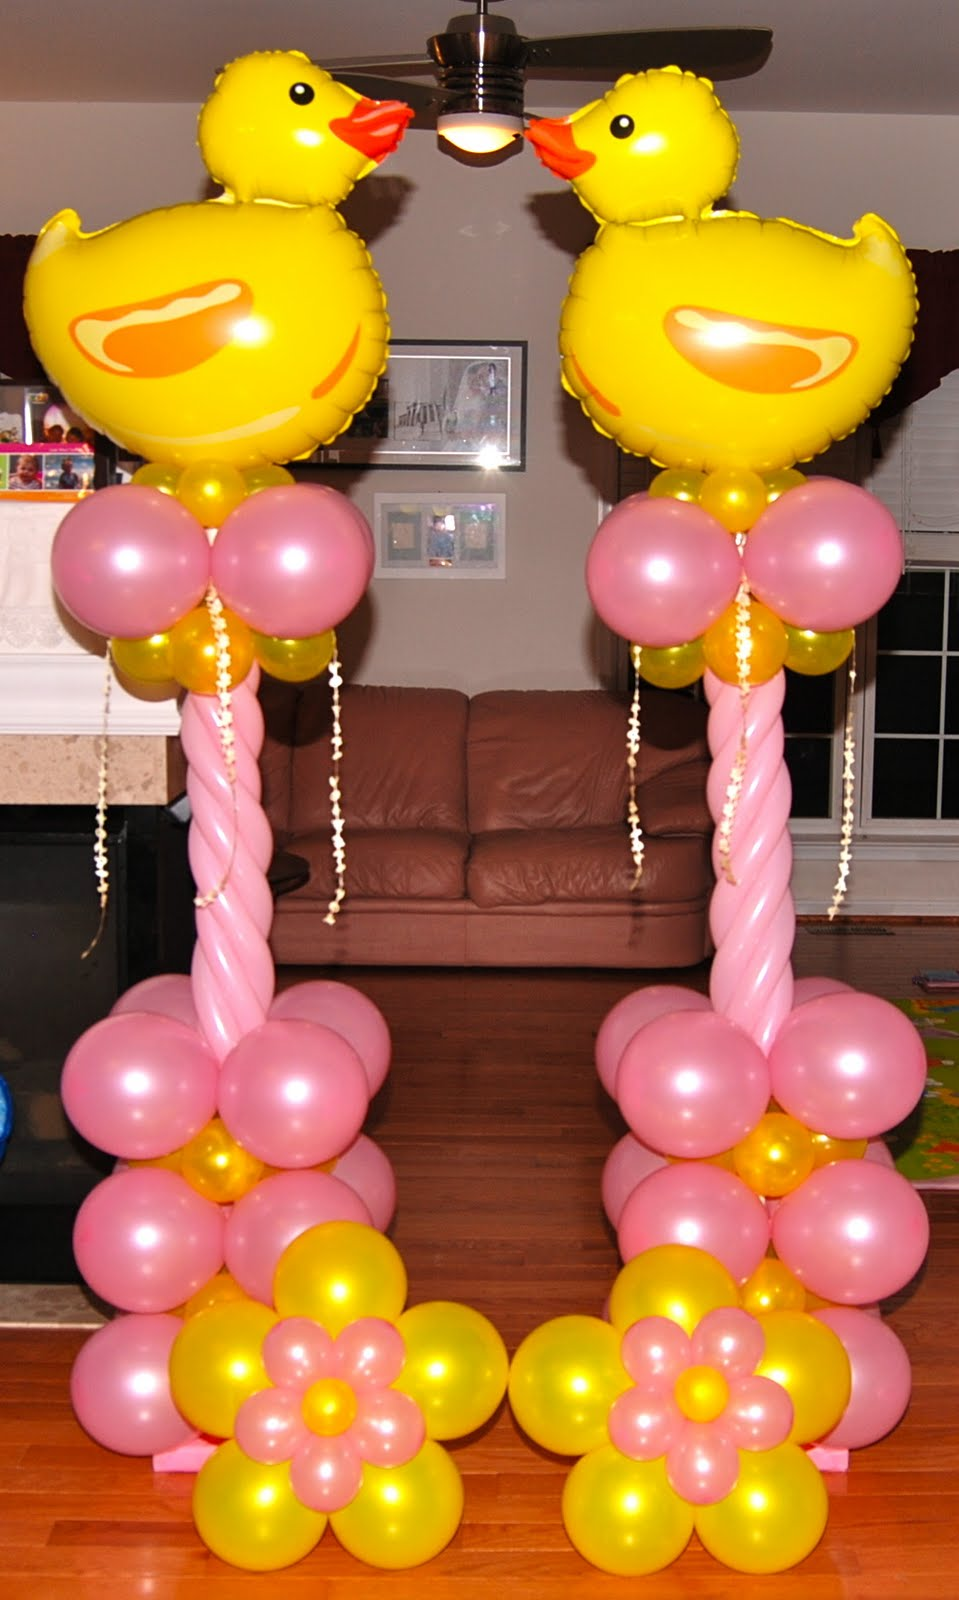 Balloons decoration for baby shower party favors ideas for Baby decoration ideas